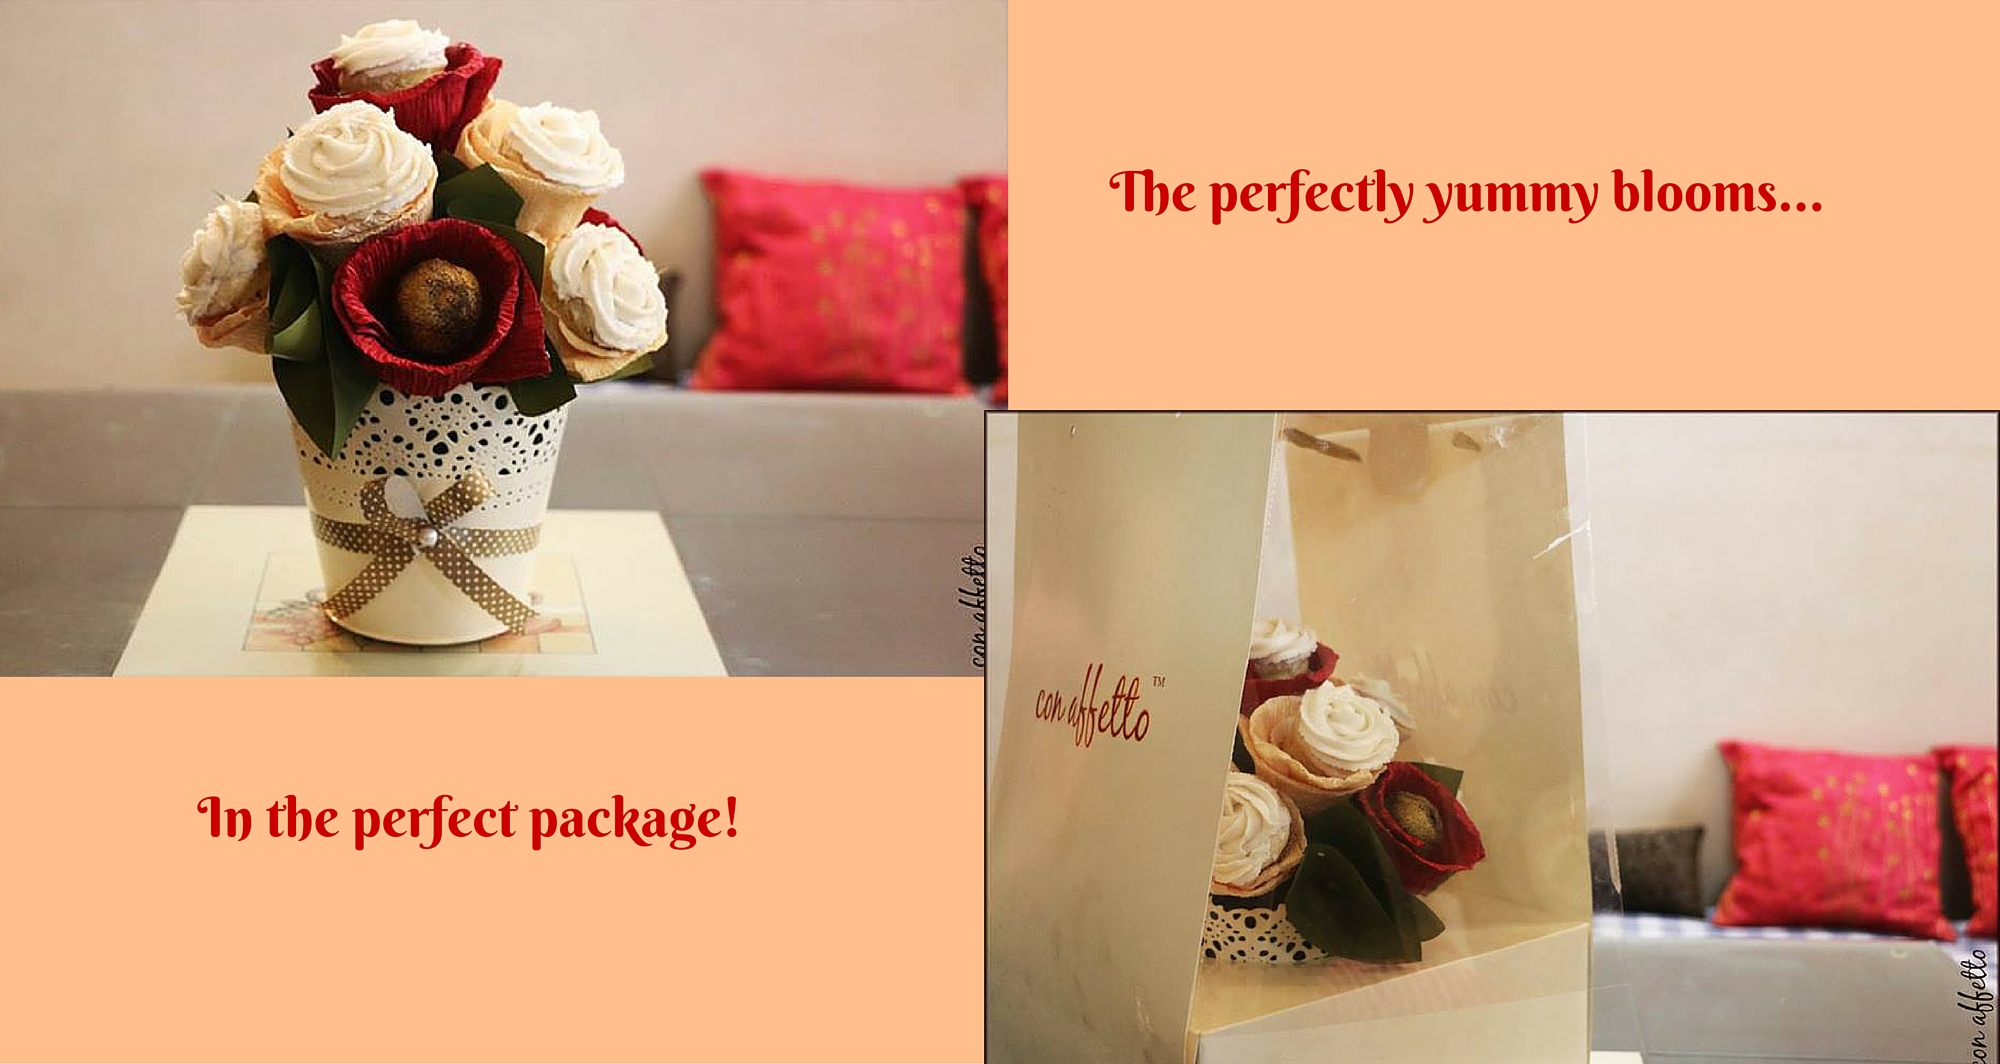 One of our edible bouquets is the gorgeous and yummy cupcake bouquet